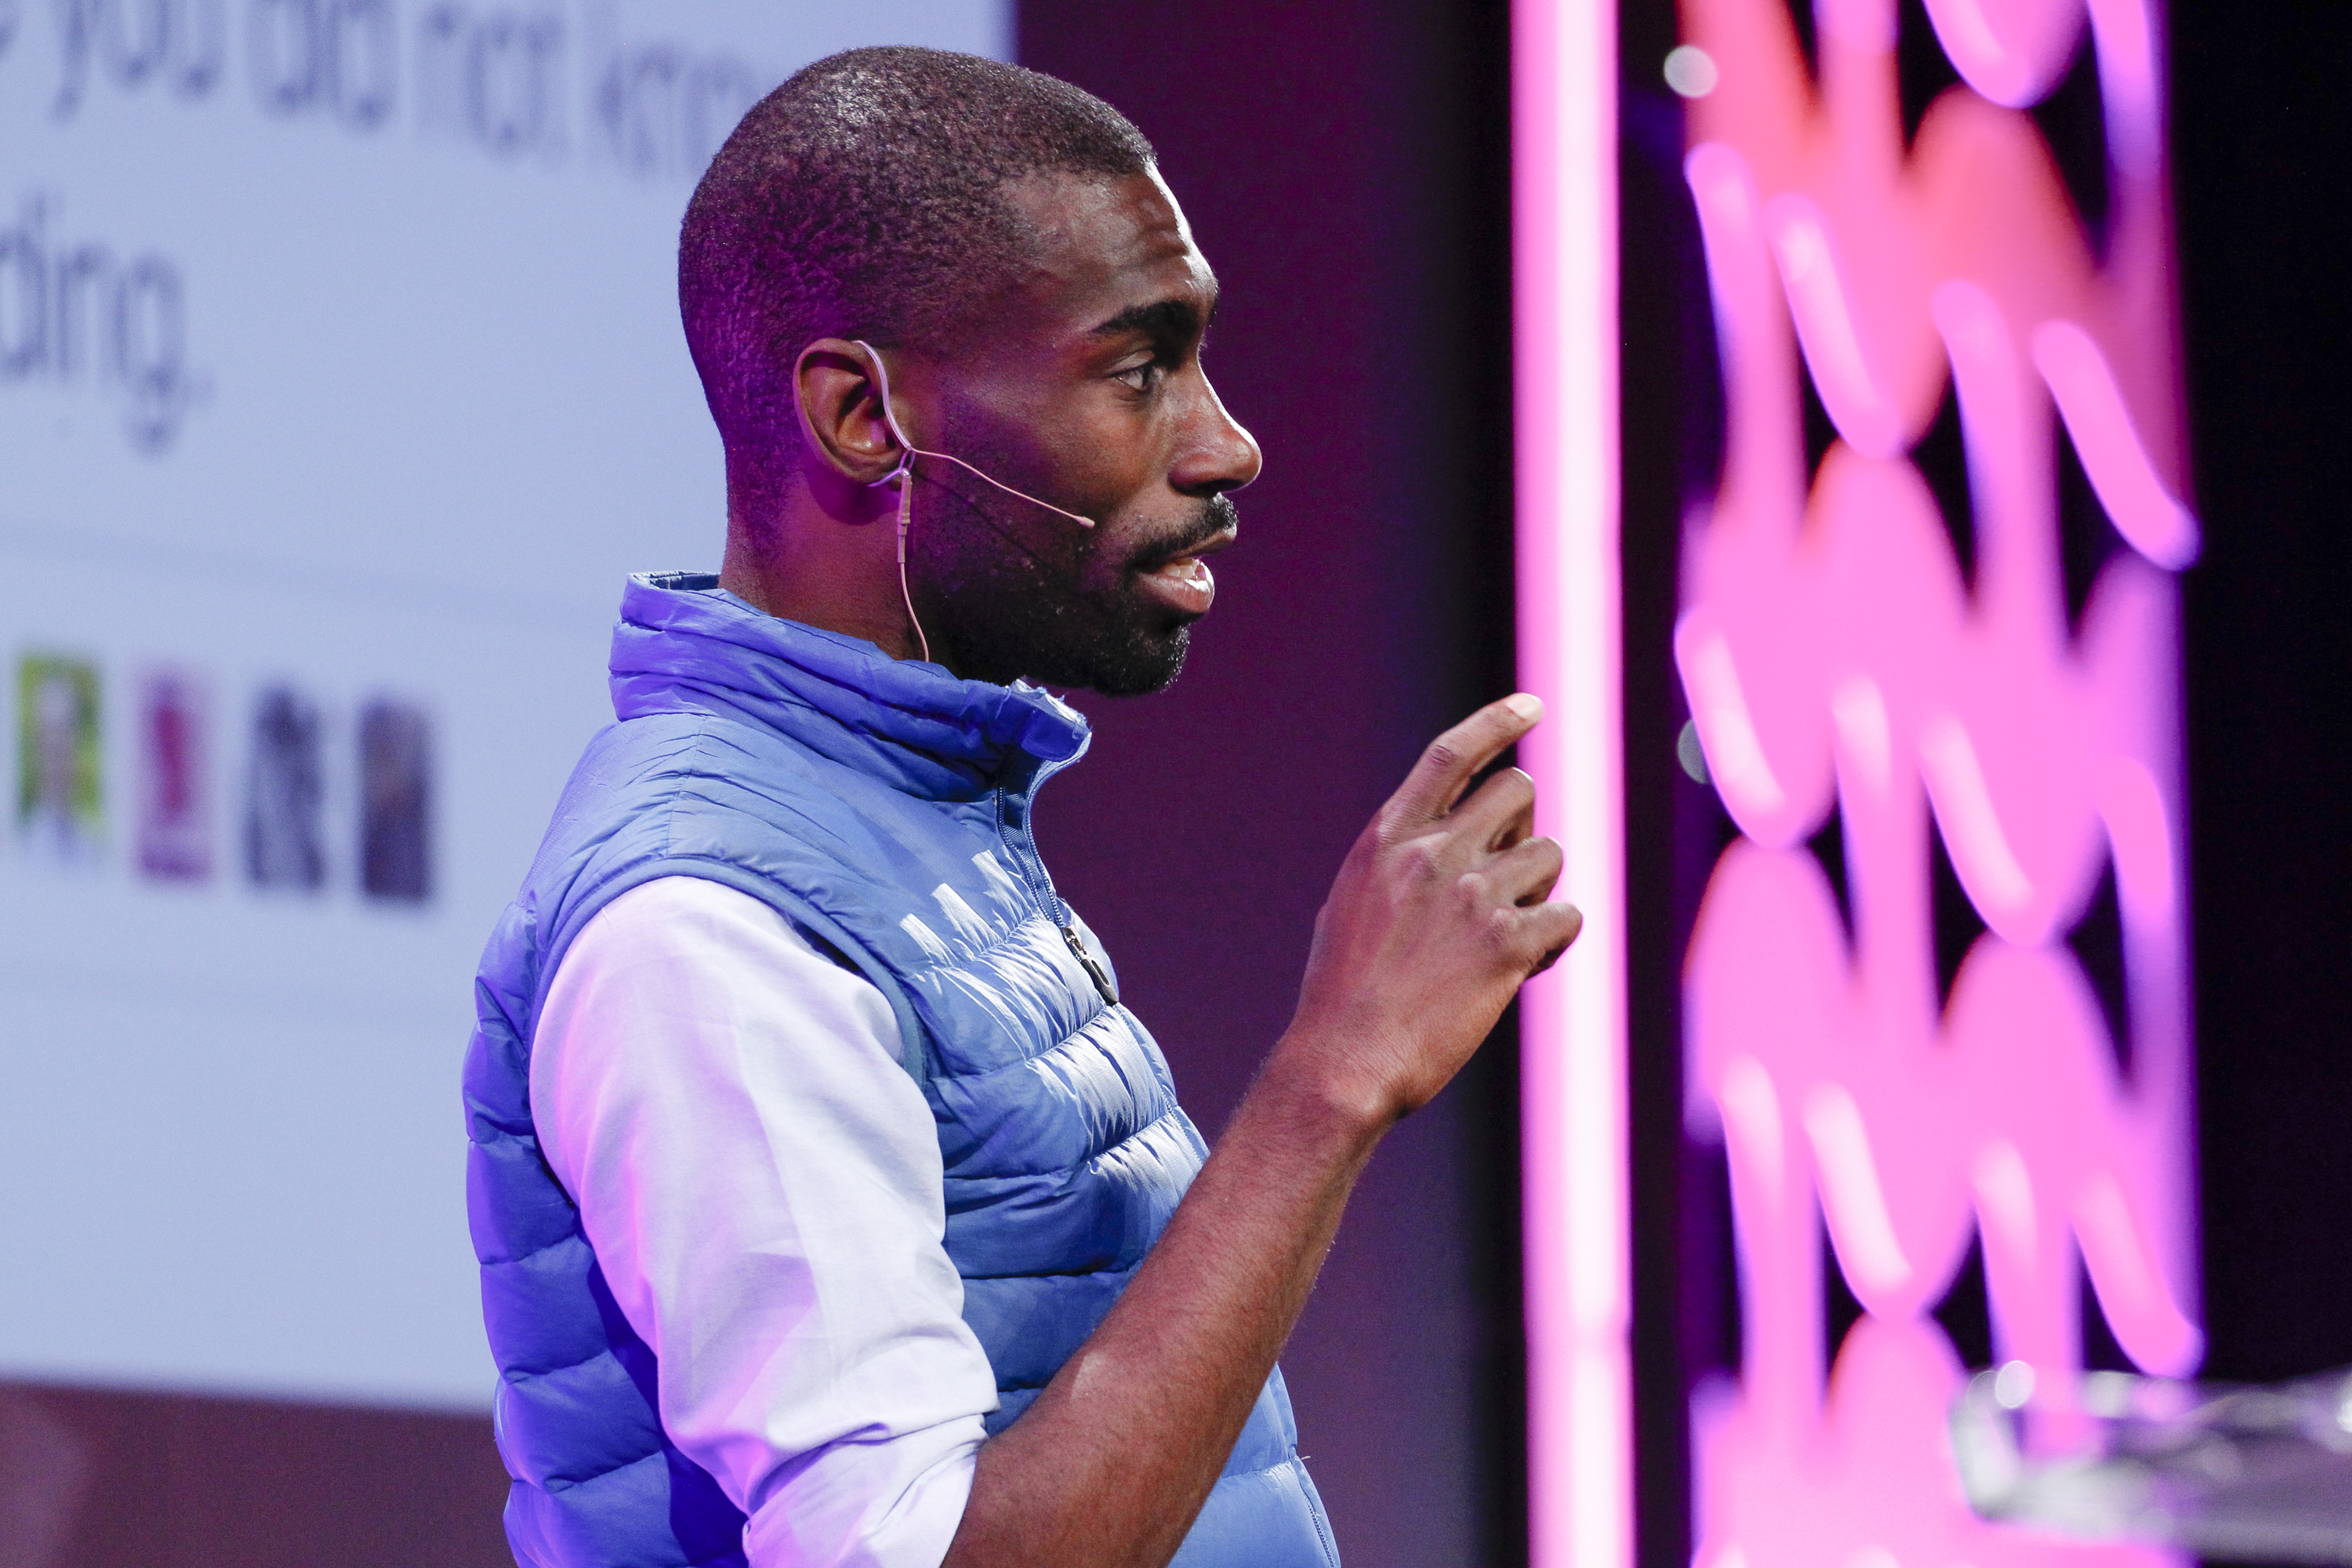 DeRay Mckesson speaks at the Nov. 2015 GLAAD Gala in San Francisco.